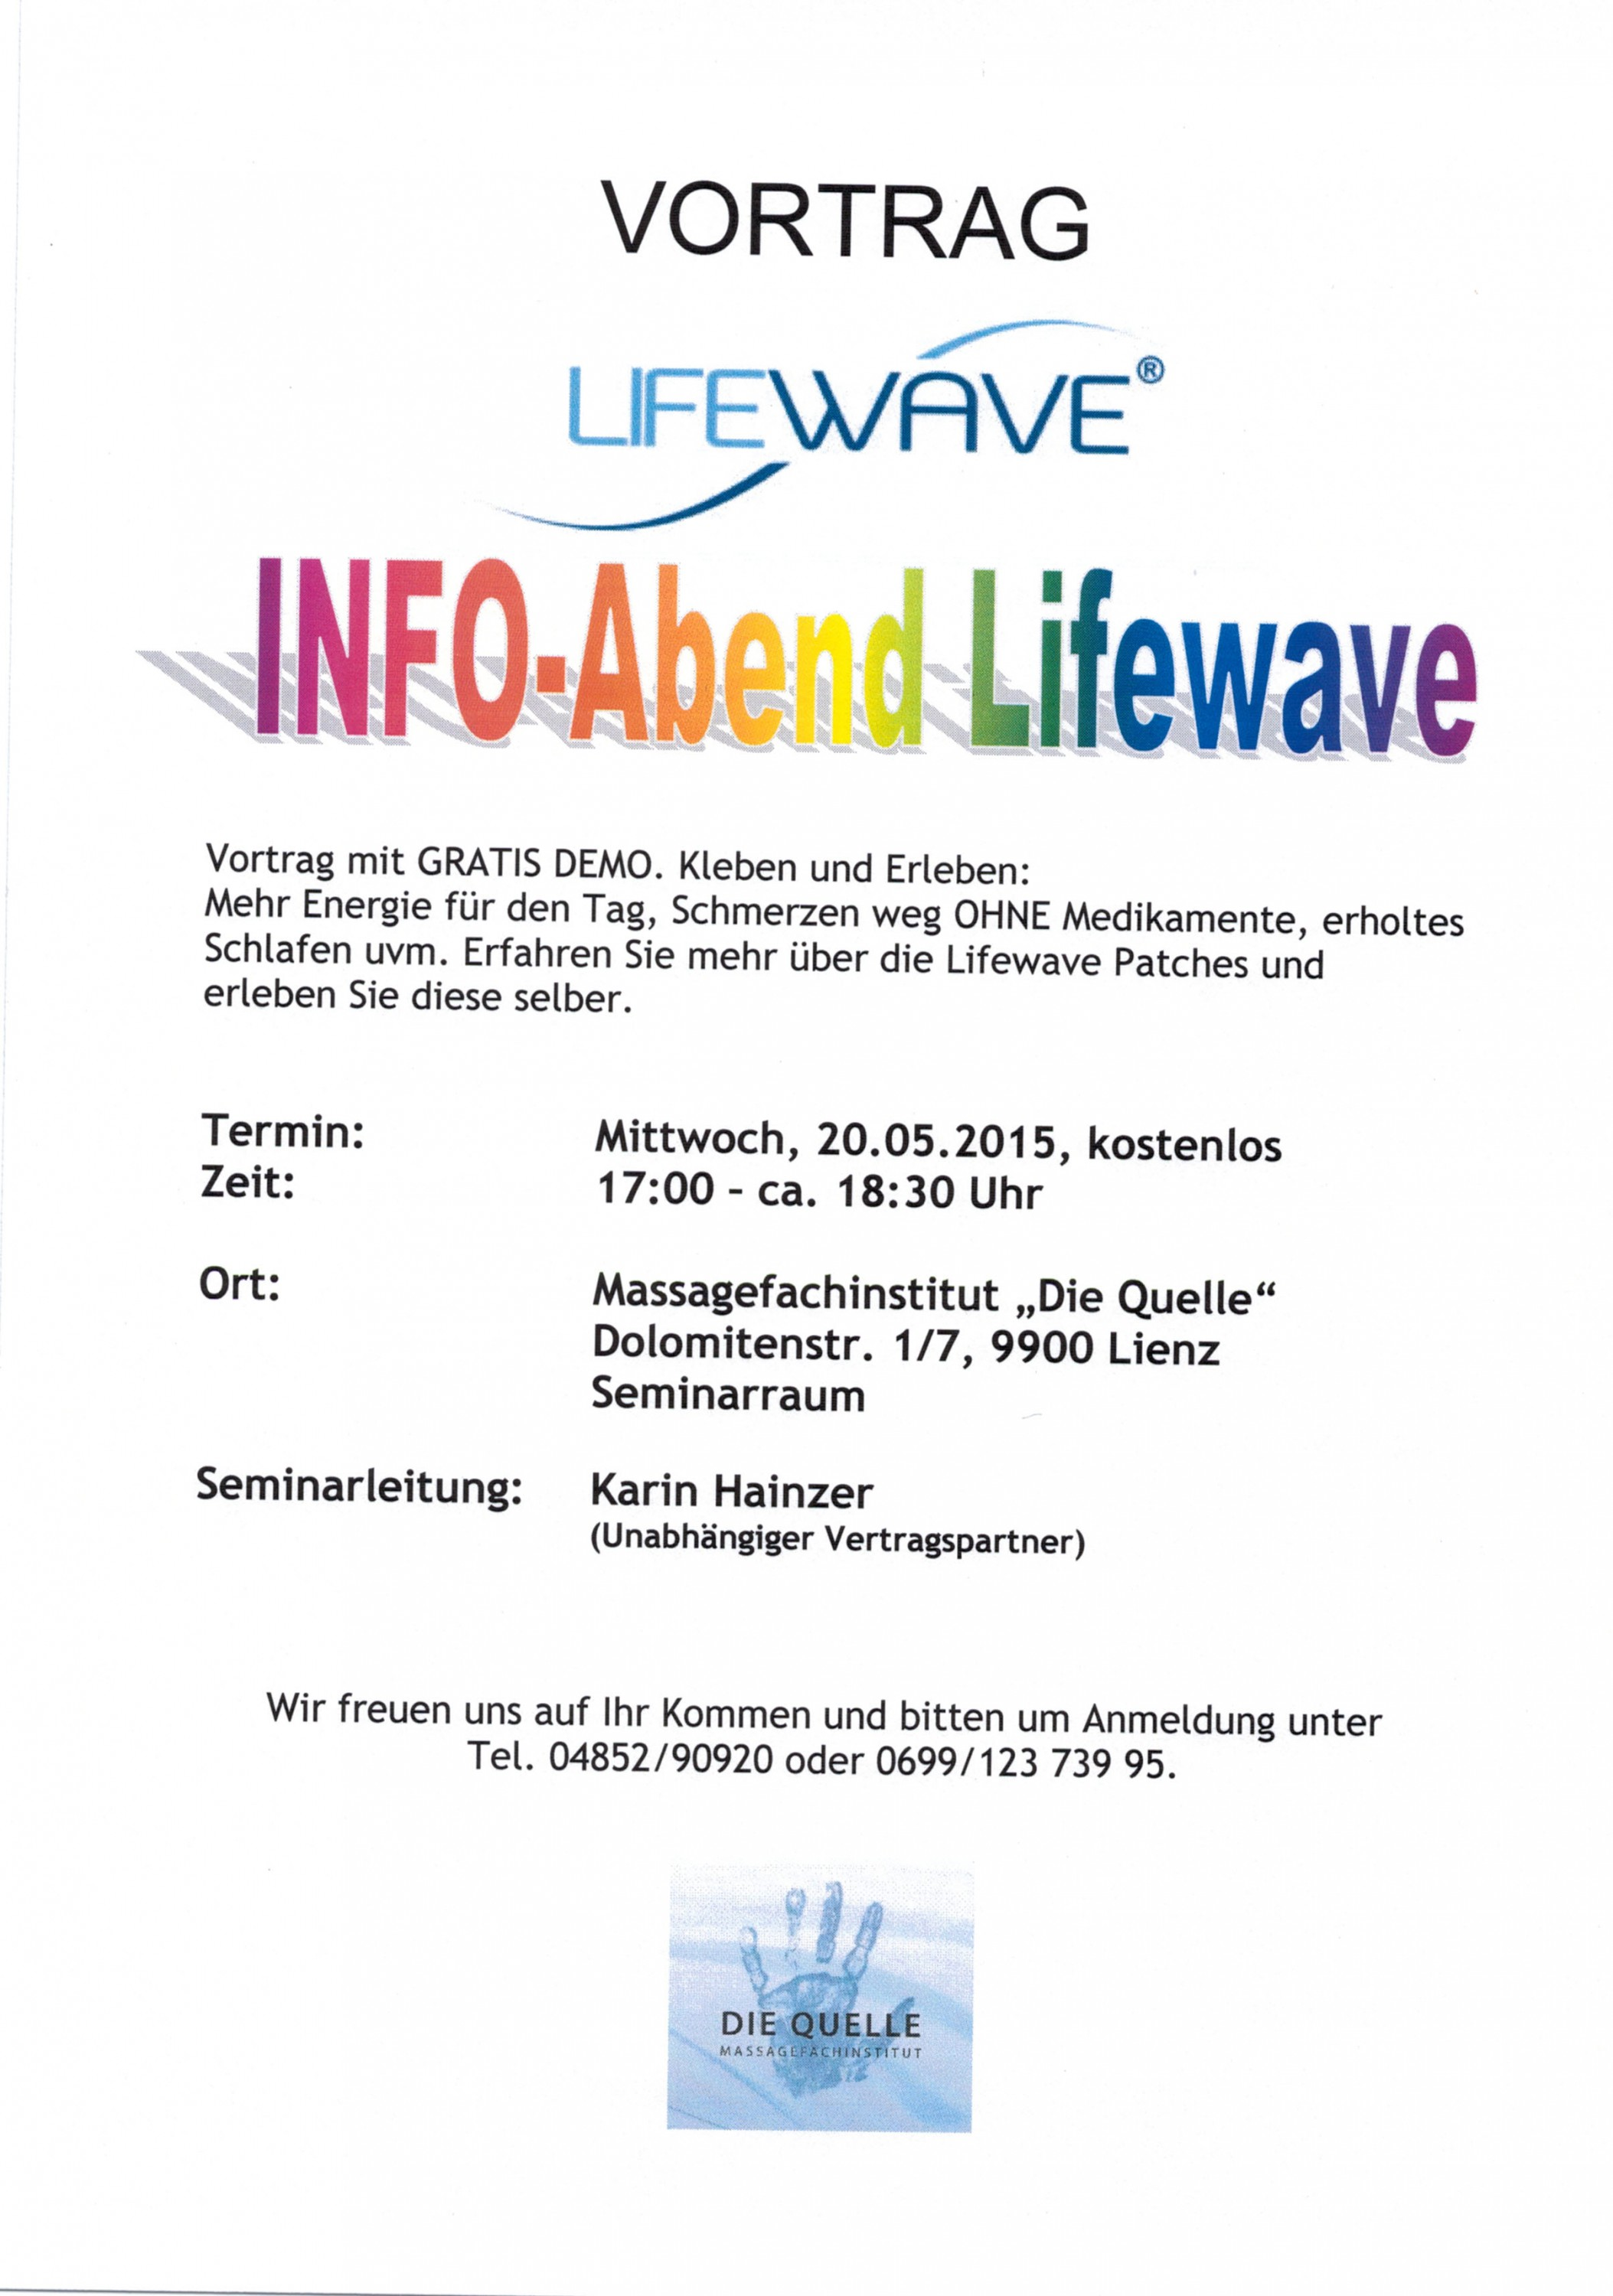 LifeWave 20.05.2015